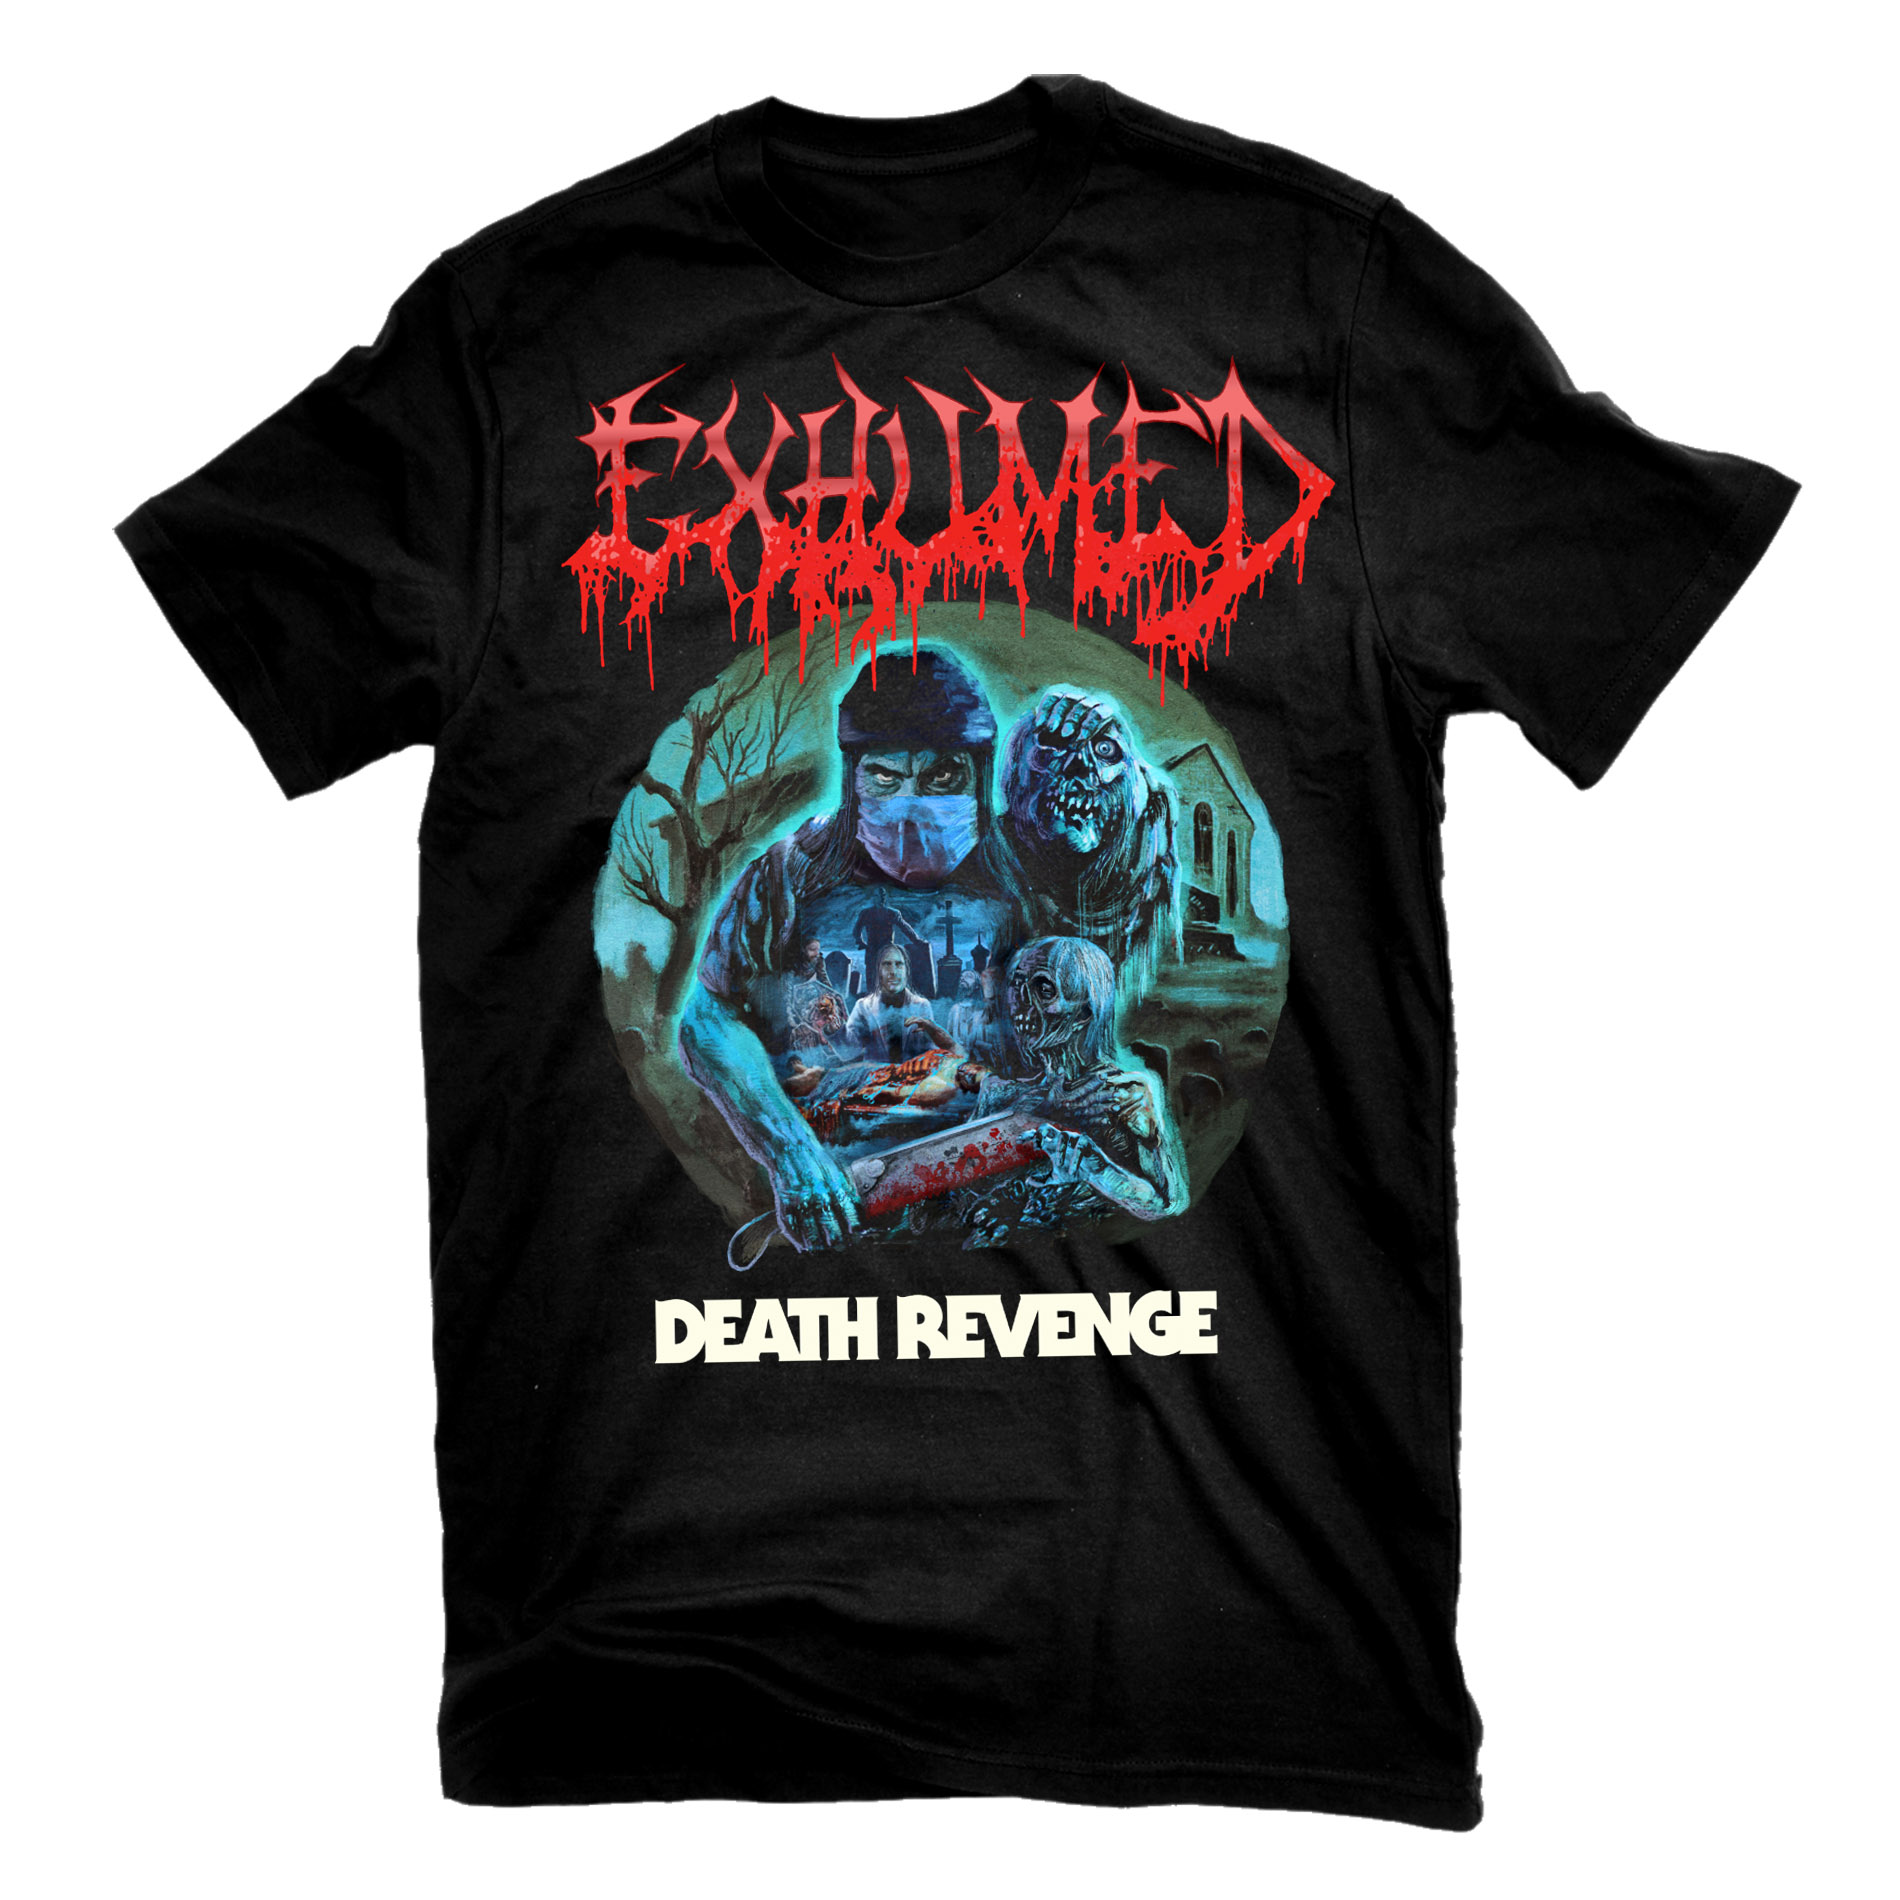 Death Revenge T Shirt + LP Bundle